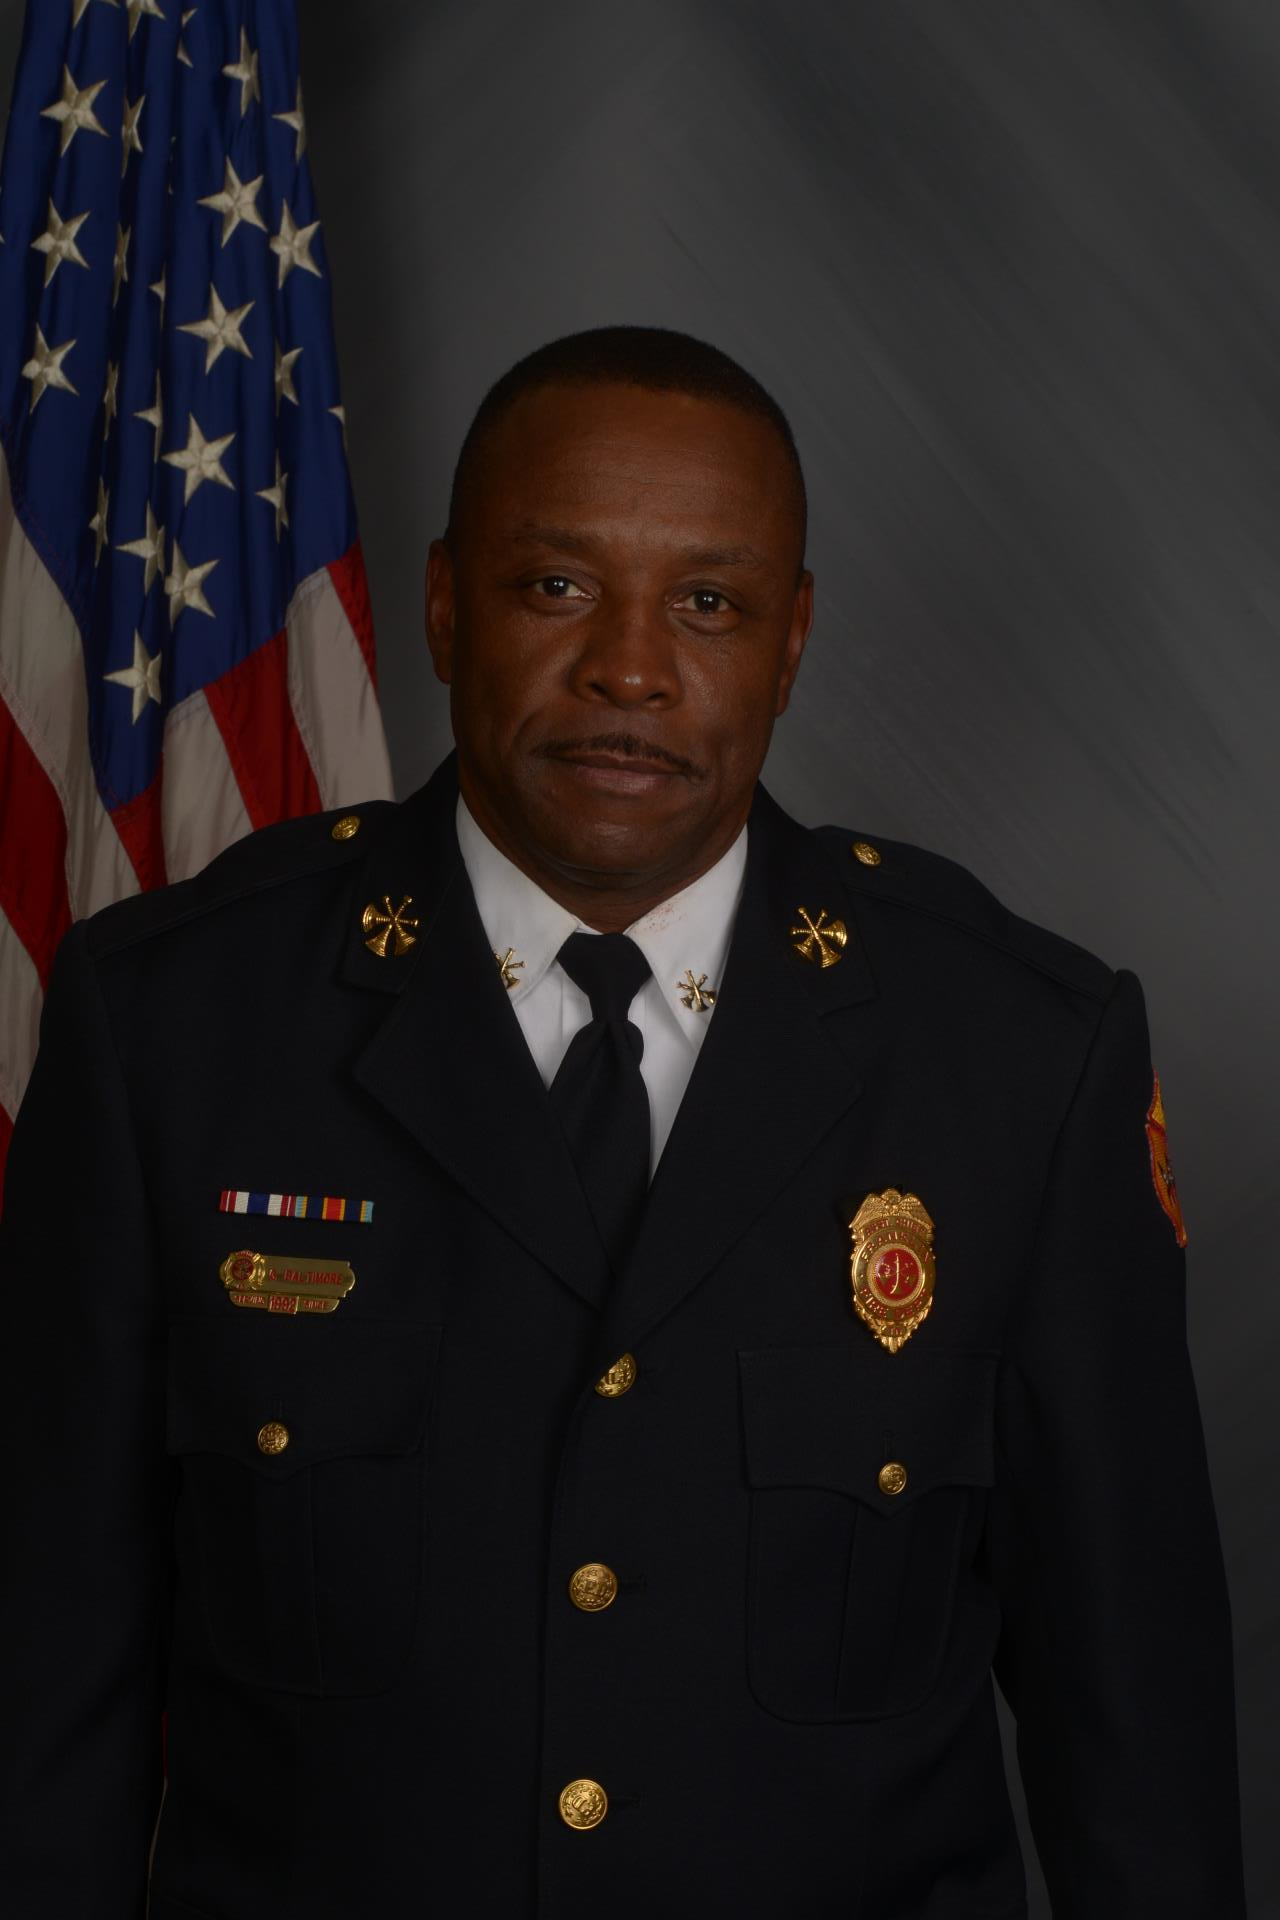 Battalion Chief Greg Baltimore